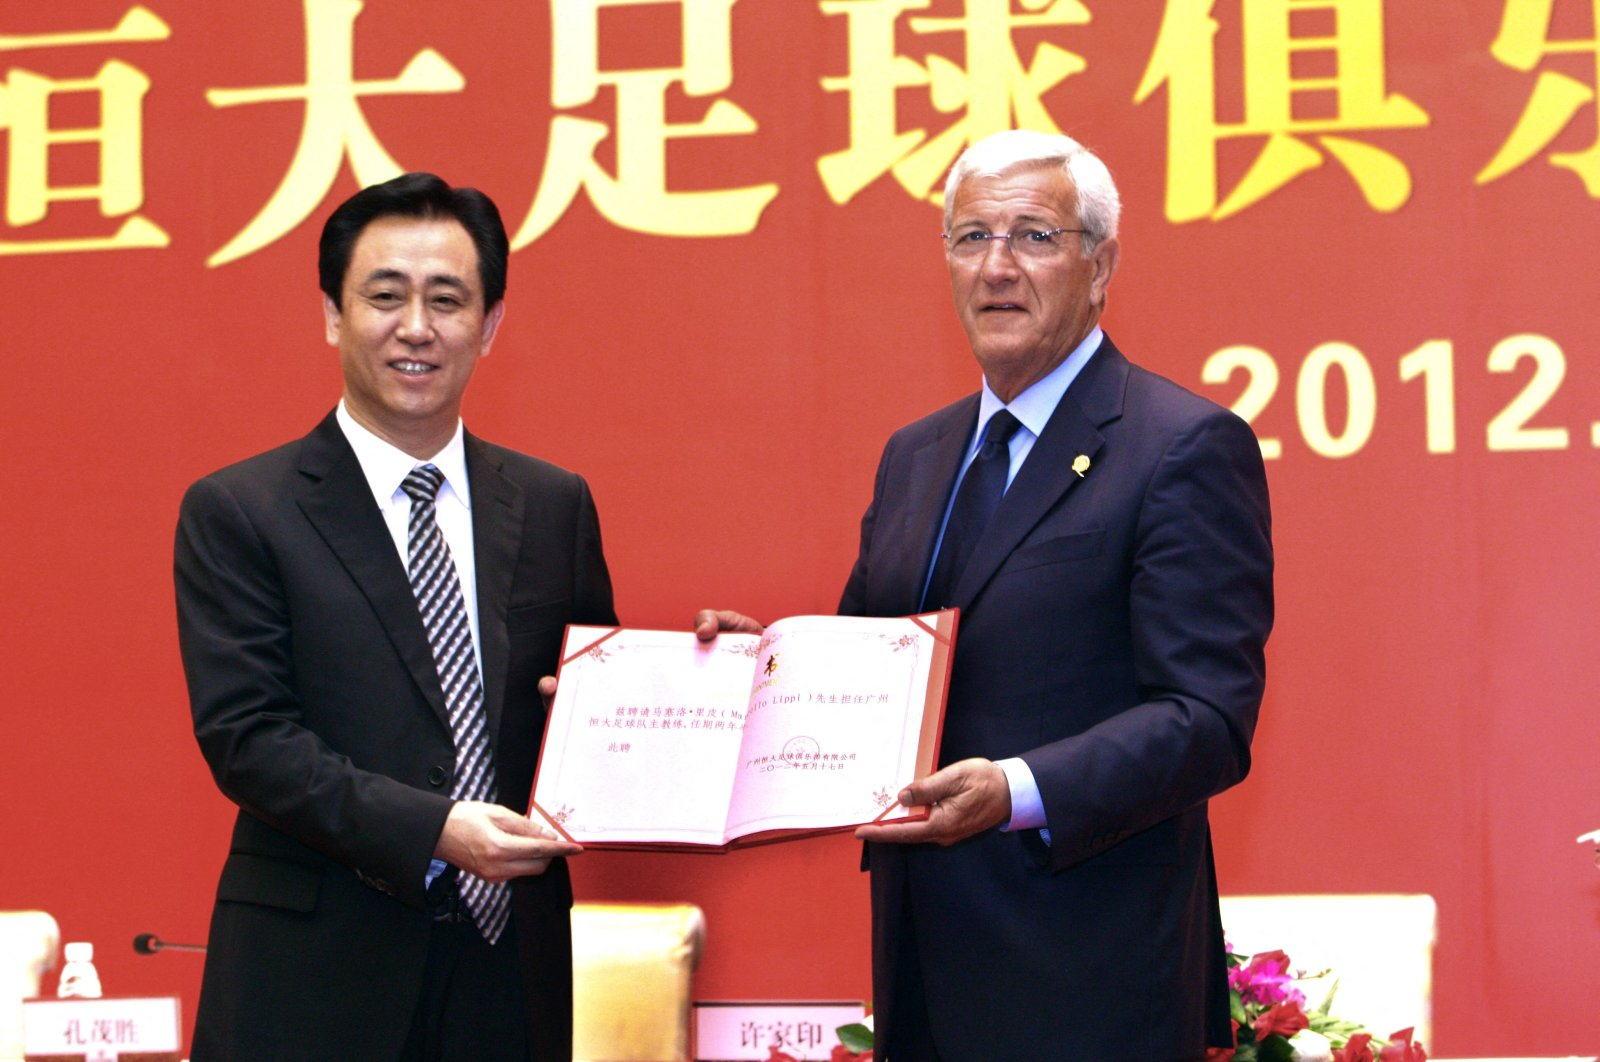 Chairperson of Guangzhou Evergrande, Xu Jiayin (L), posing with World Cup-winning football coach Marcello Lippi during a signing ceremony in Guangzhou, Guangdong province, southern China, May 17, 2012. (AFP Photo)